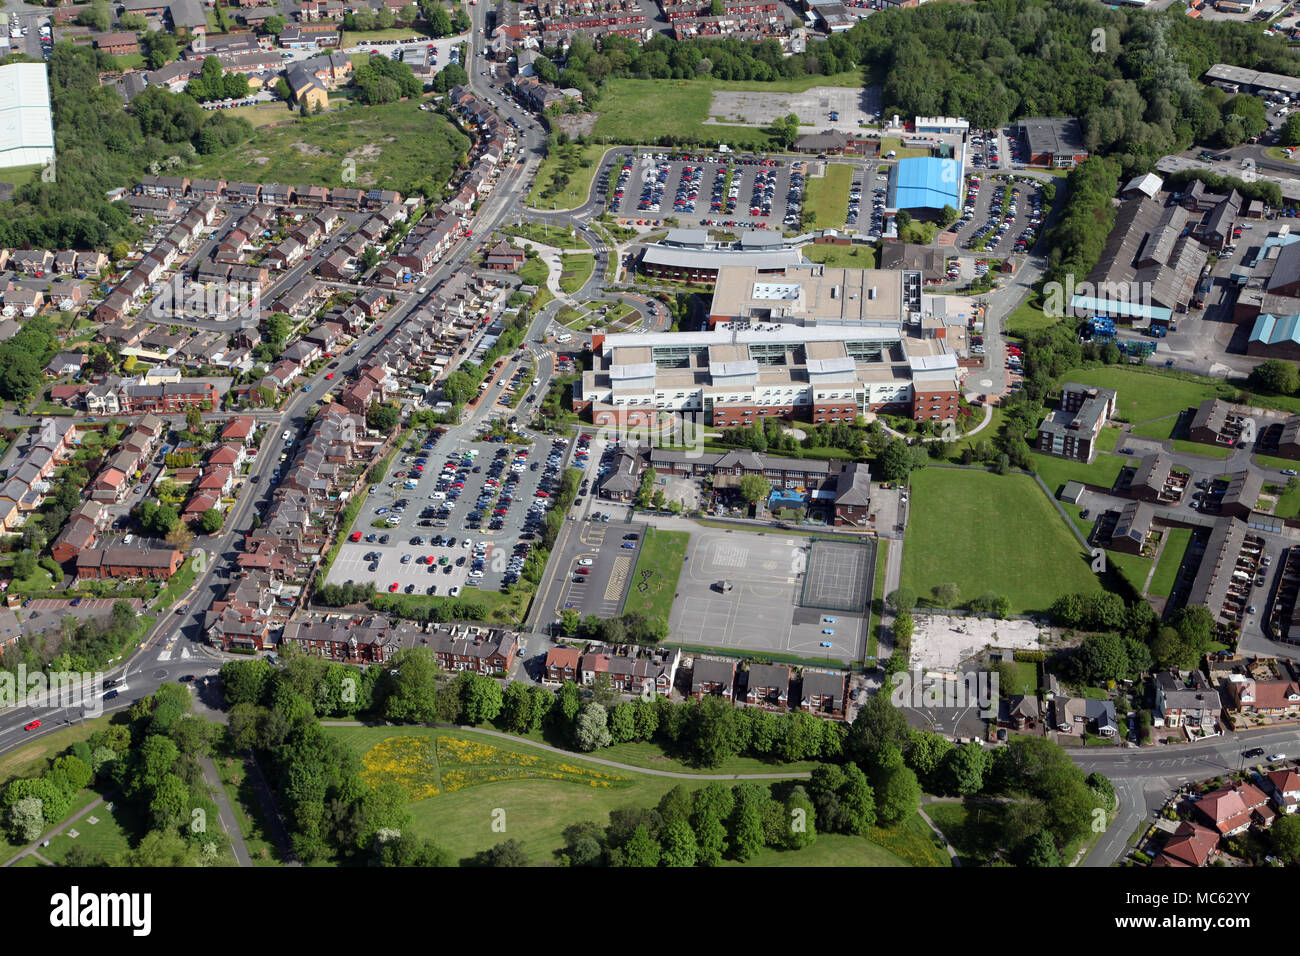 aerial view of St Helens town centre including the Hospital - Stock Image